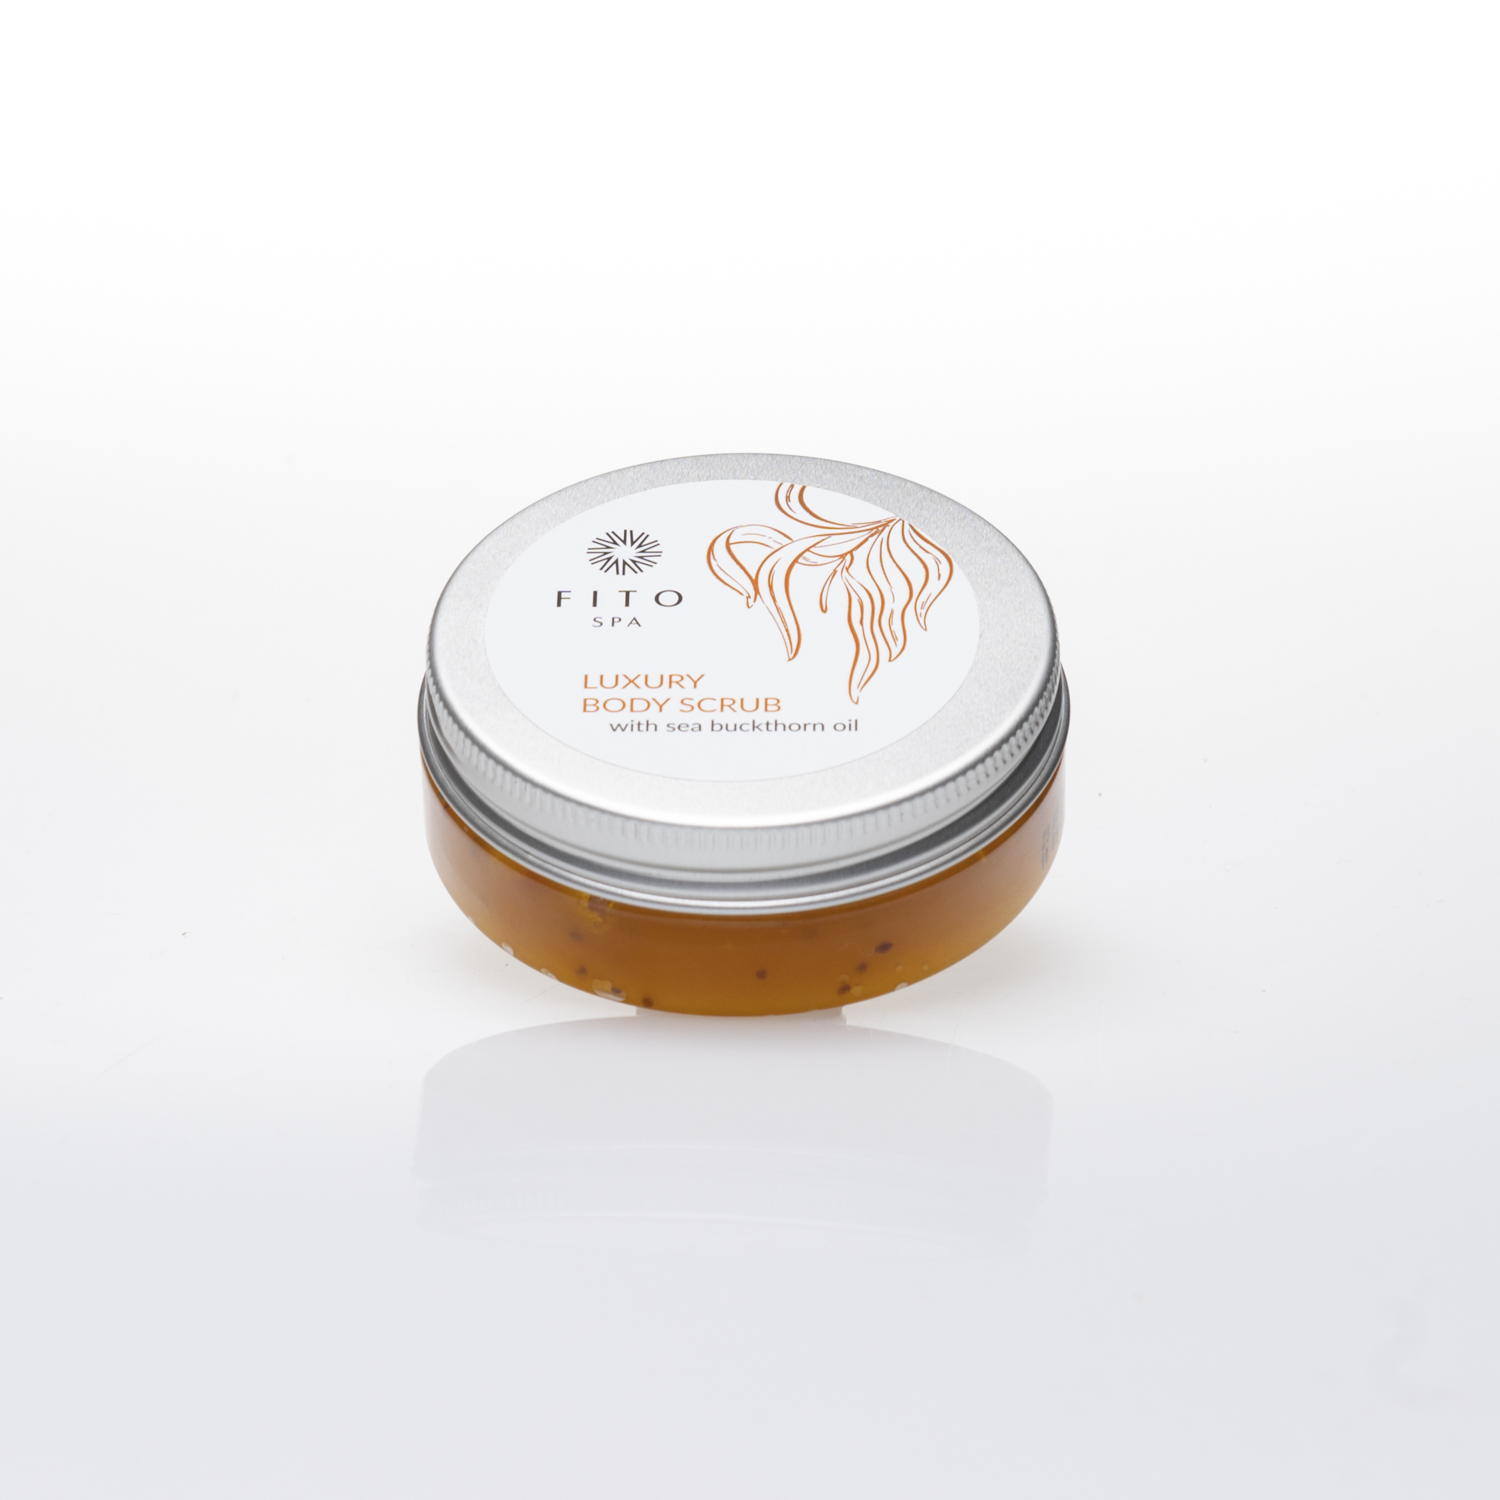 LUXURY BODY SALT SCRUB 80g